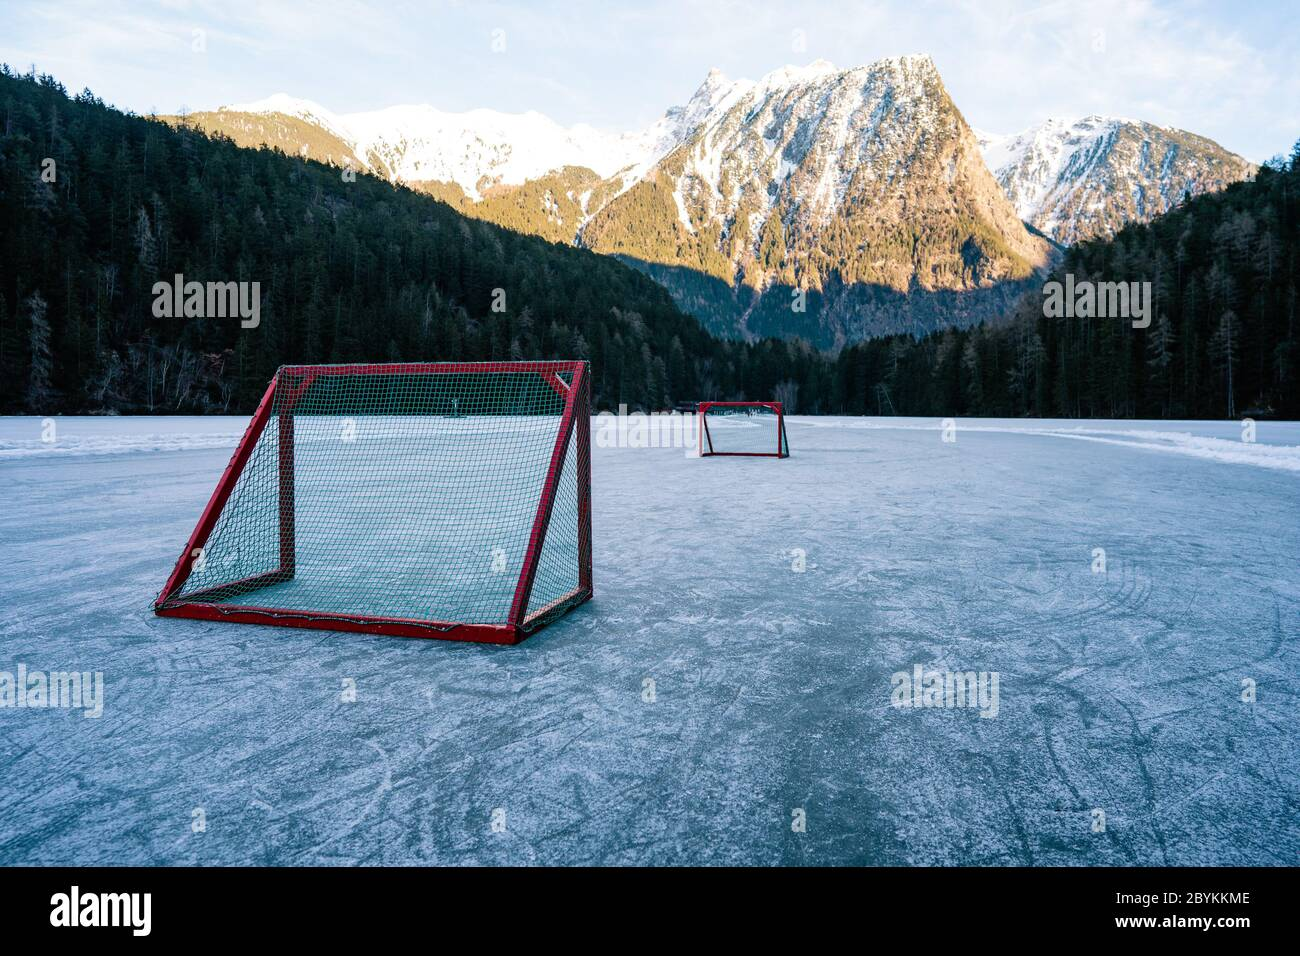 Pond Hockey High Resolution Stock Photography And Images Alamy